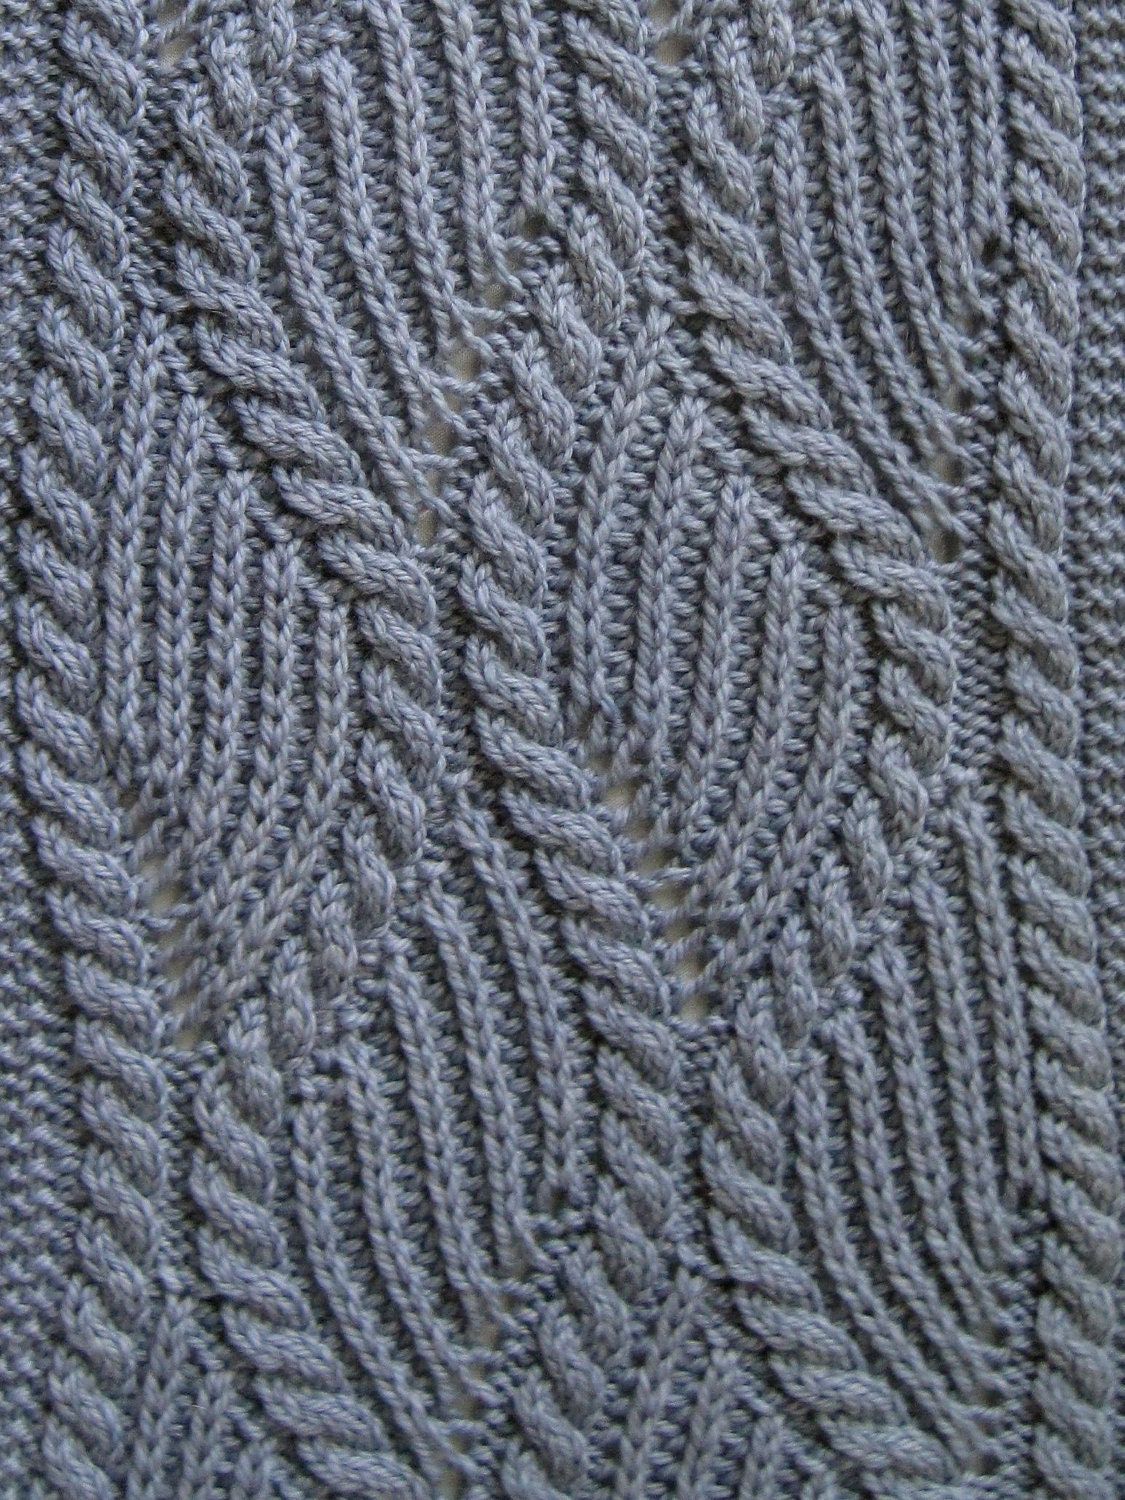 Cable Stitch Knitting Patterns : Knit Scarf Pattern: Brioche and Traveling Cable Knitting